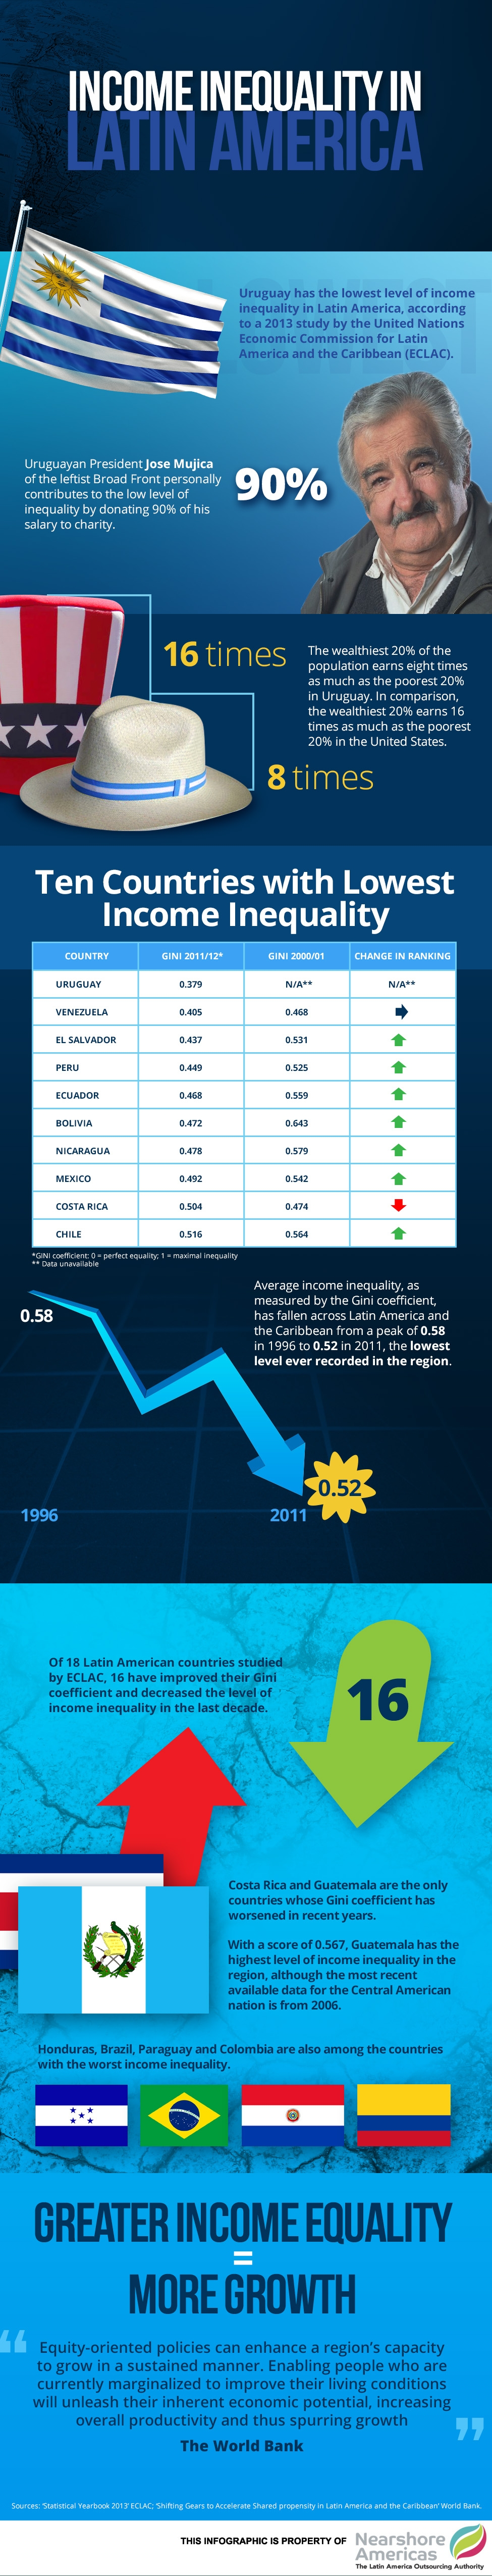 incom inequality1 Infographic: Uruguay Has Lowest Income Inequality in Latin America